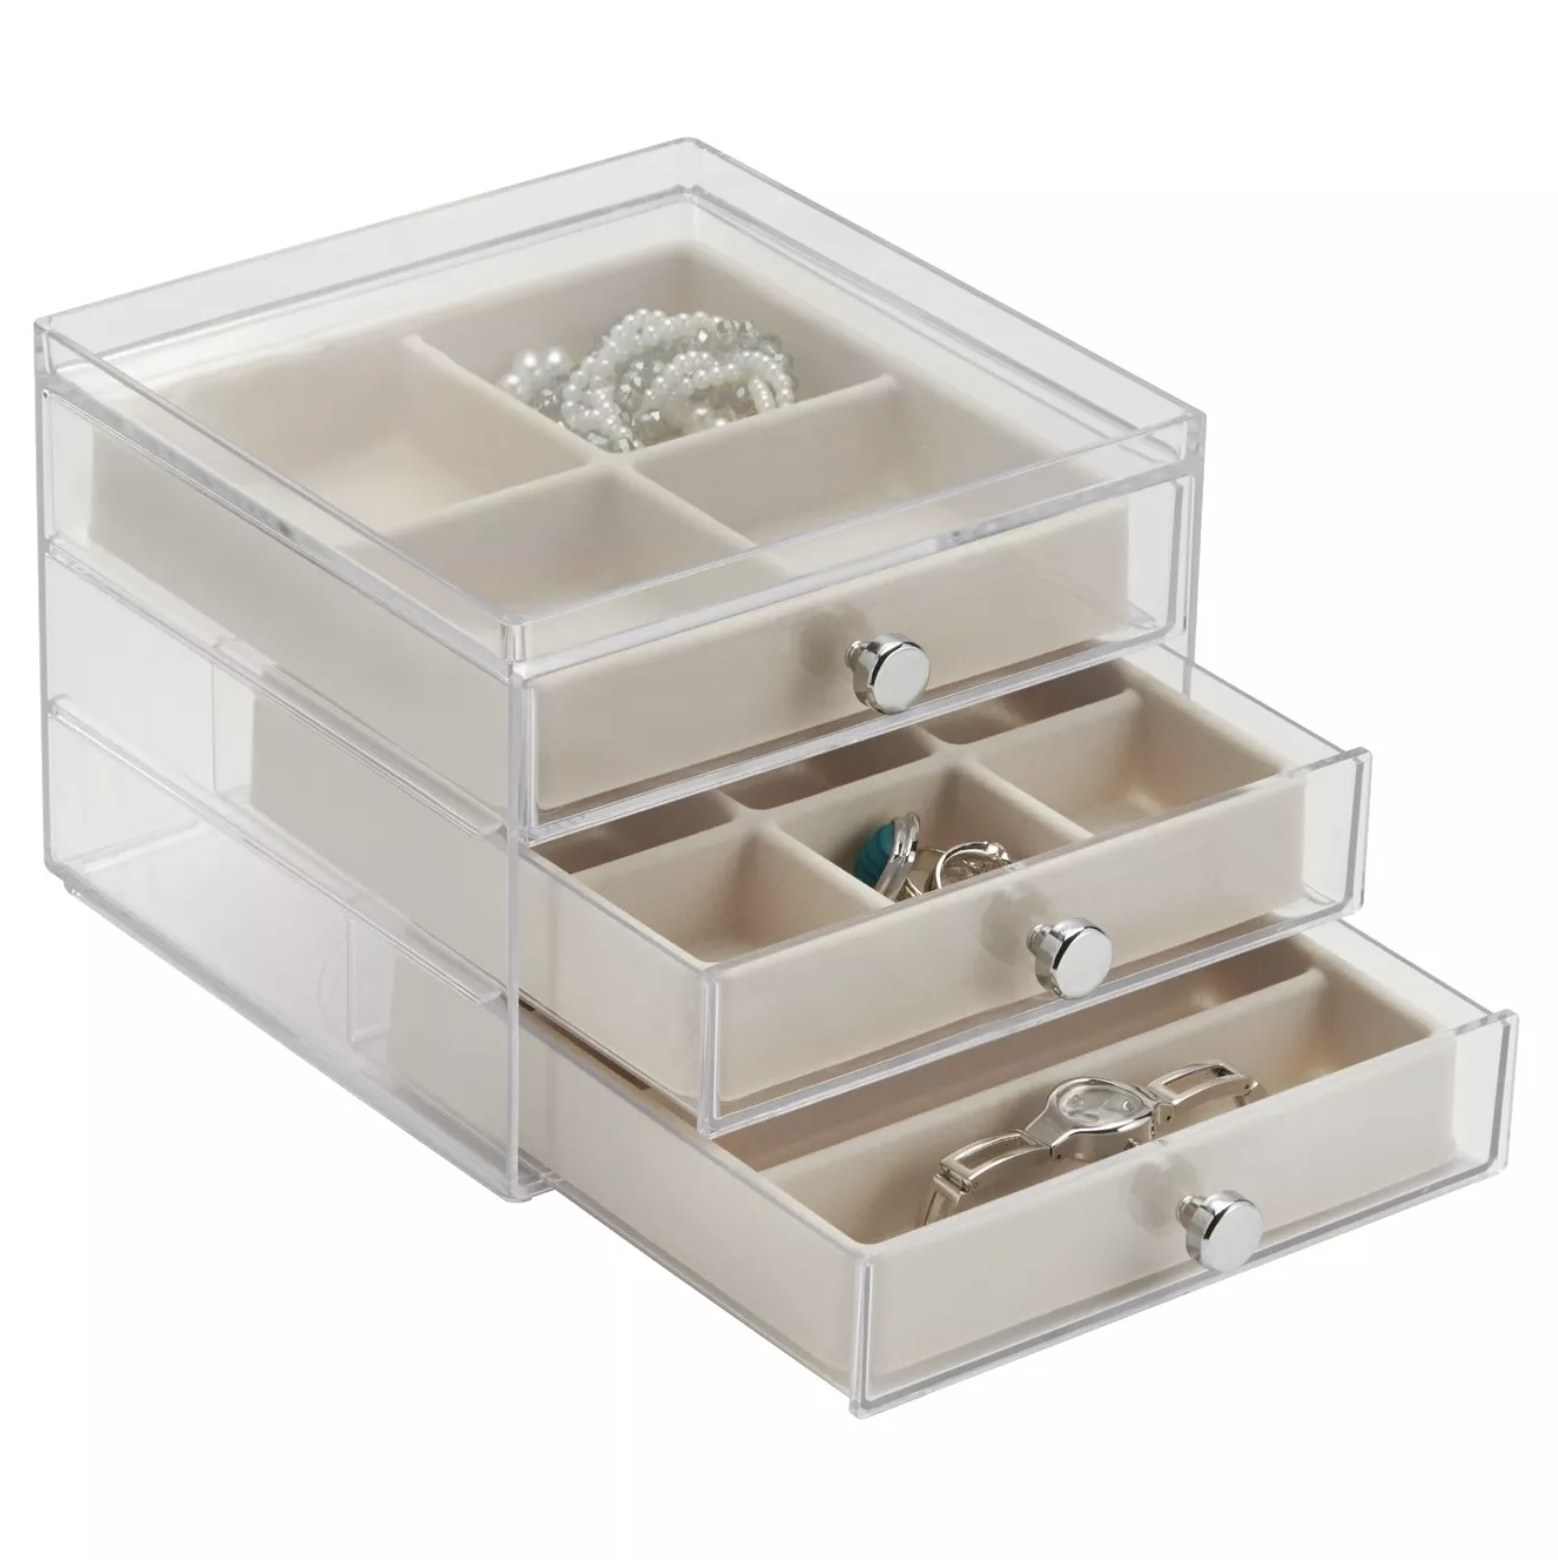 The acrylic jewelry organizer